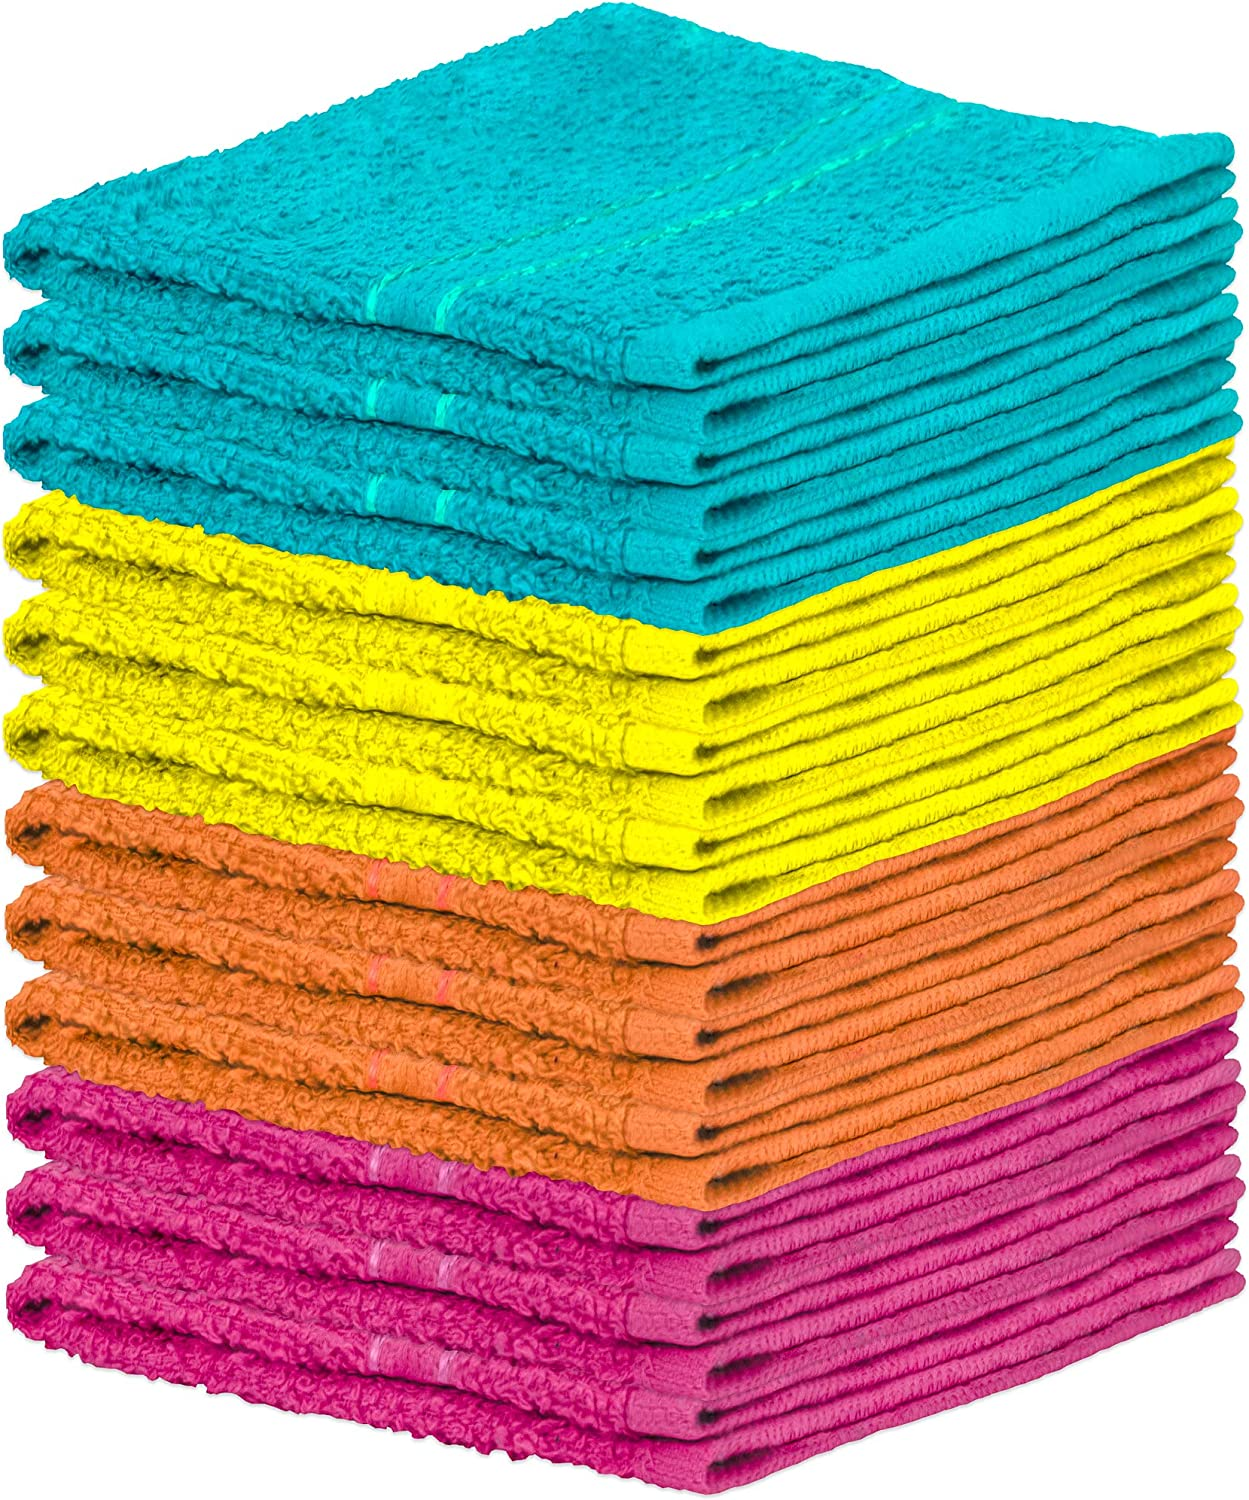 COTON MODE/® White Hygiene Biofresh Antibacterial Cotton Dish Cloth Super Soft Absorbent Kitchen Cloth Professional Catering Wash Cloth Pack of 10 Cloths